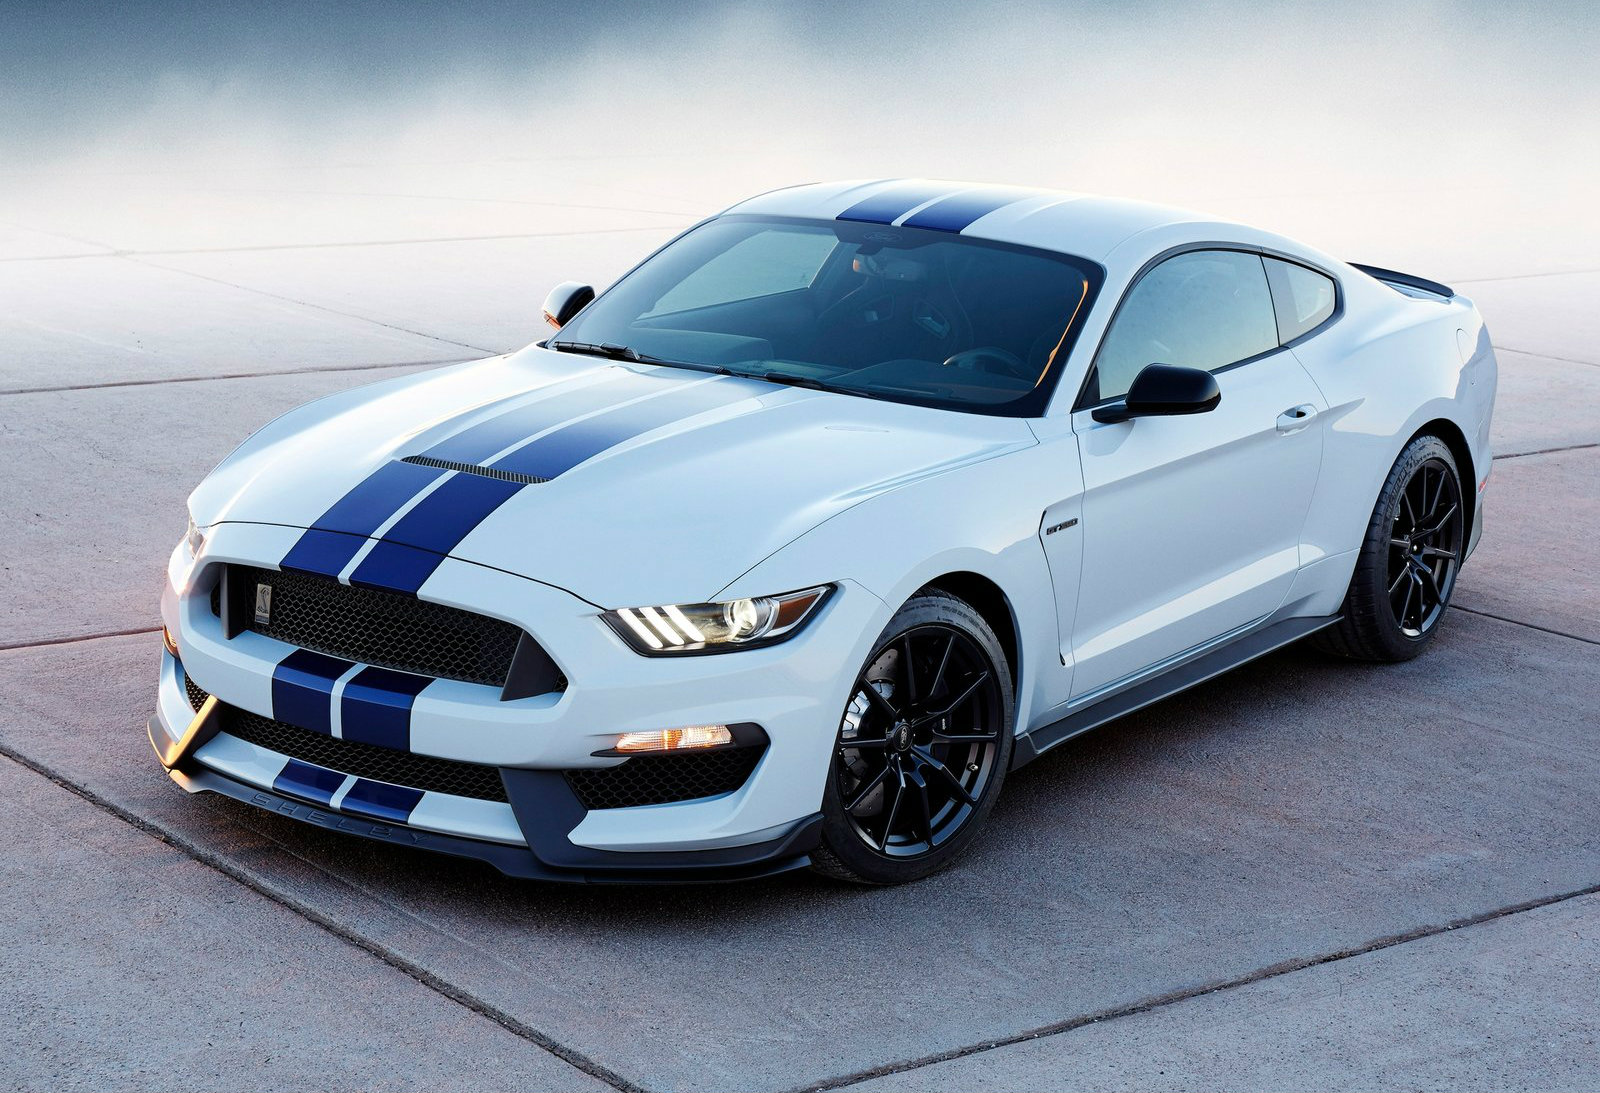 2016 shelby gt350 mustang options list leaked autoevolution. Black Bedroom Furniture Sets. Home Design Ideas